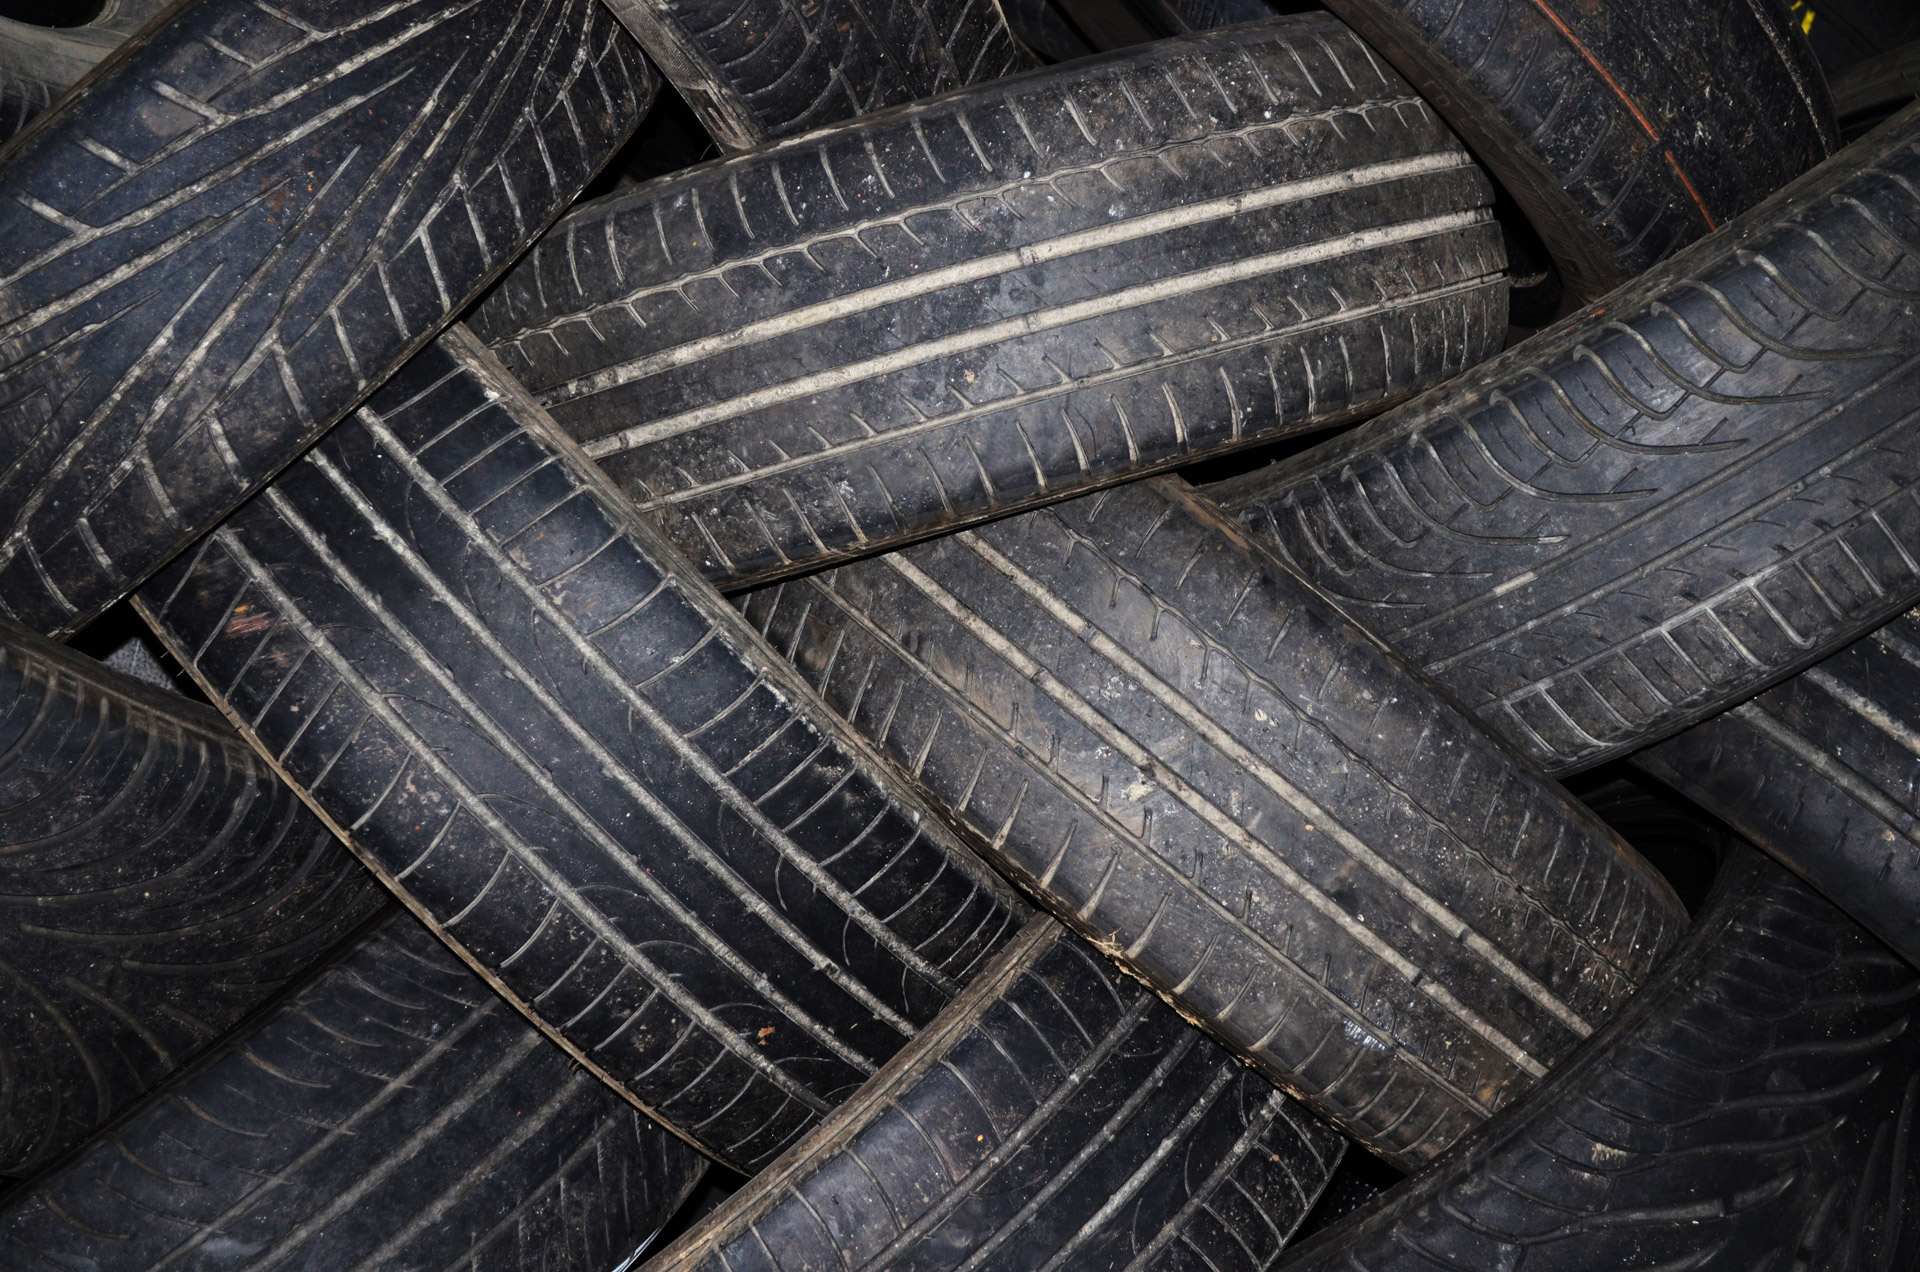 Scrap Tire Clean up in County